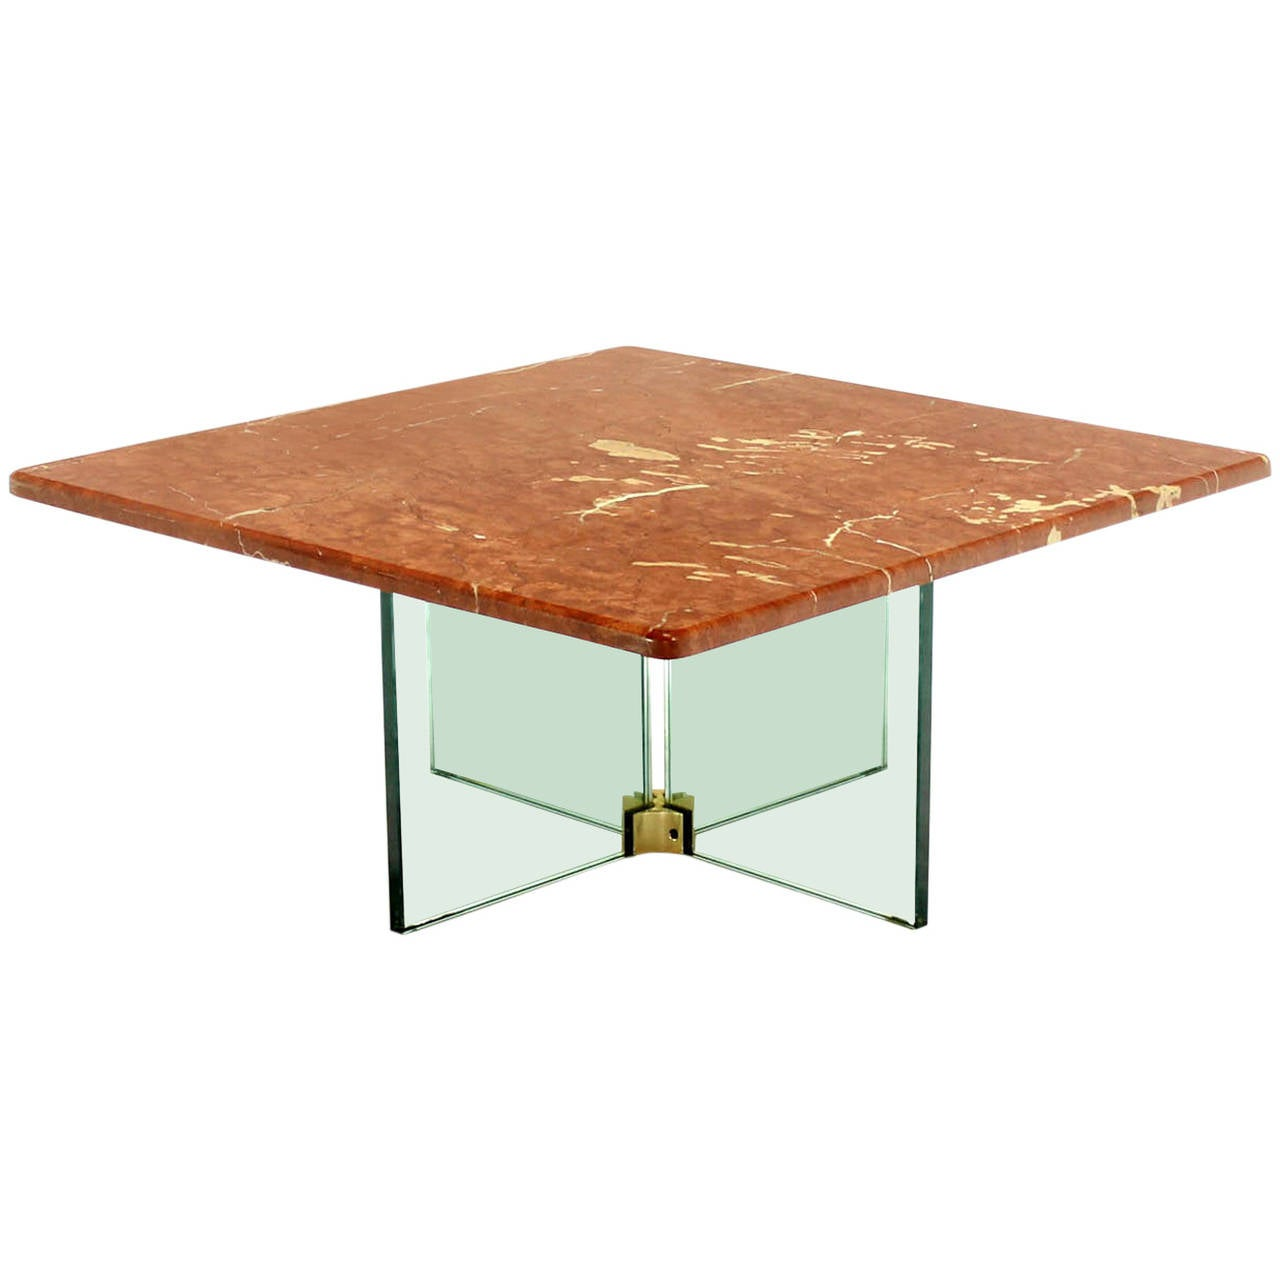 Glass x cross base coffee table w marble top for sale at 1stdibs Stone coffee table top